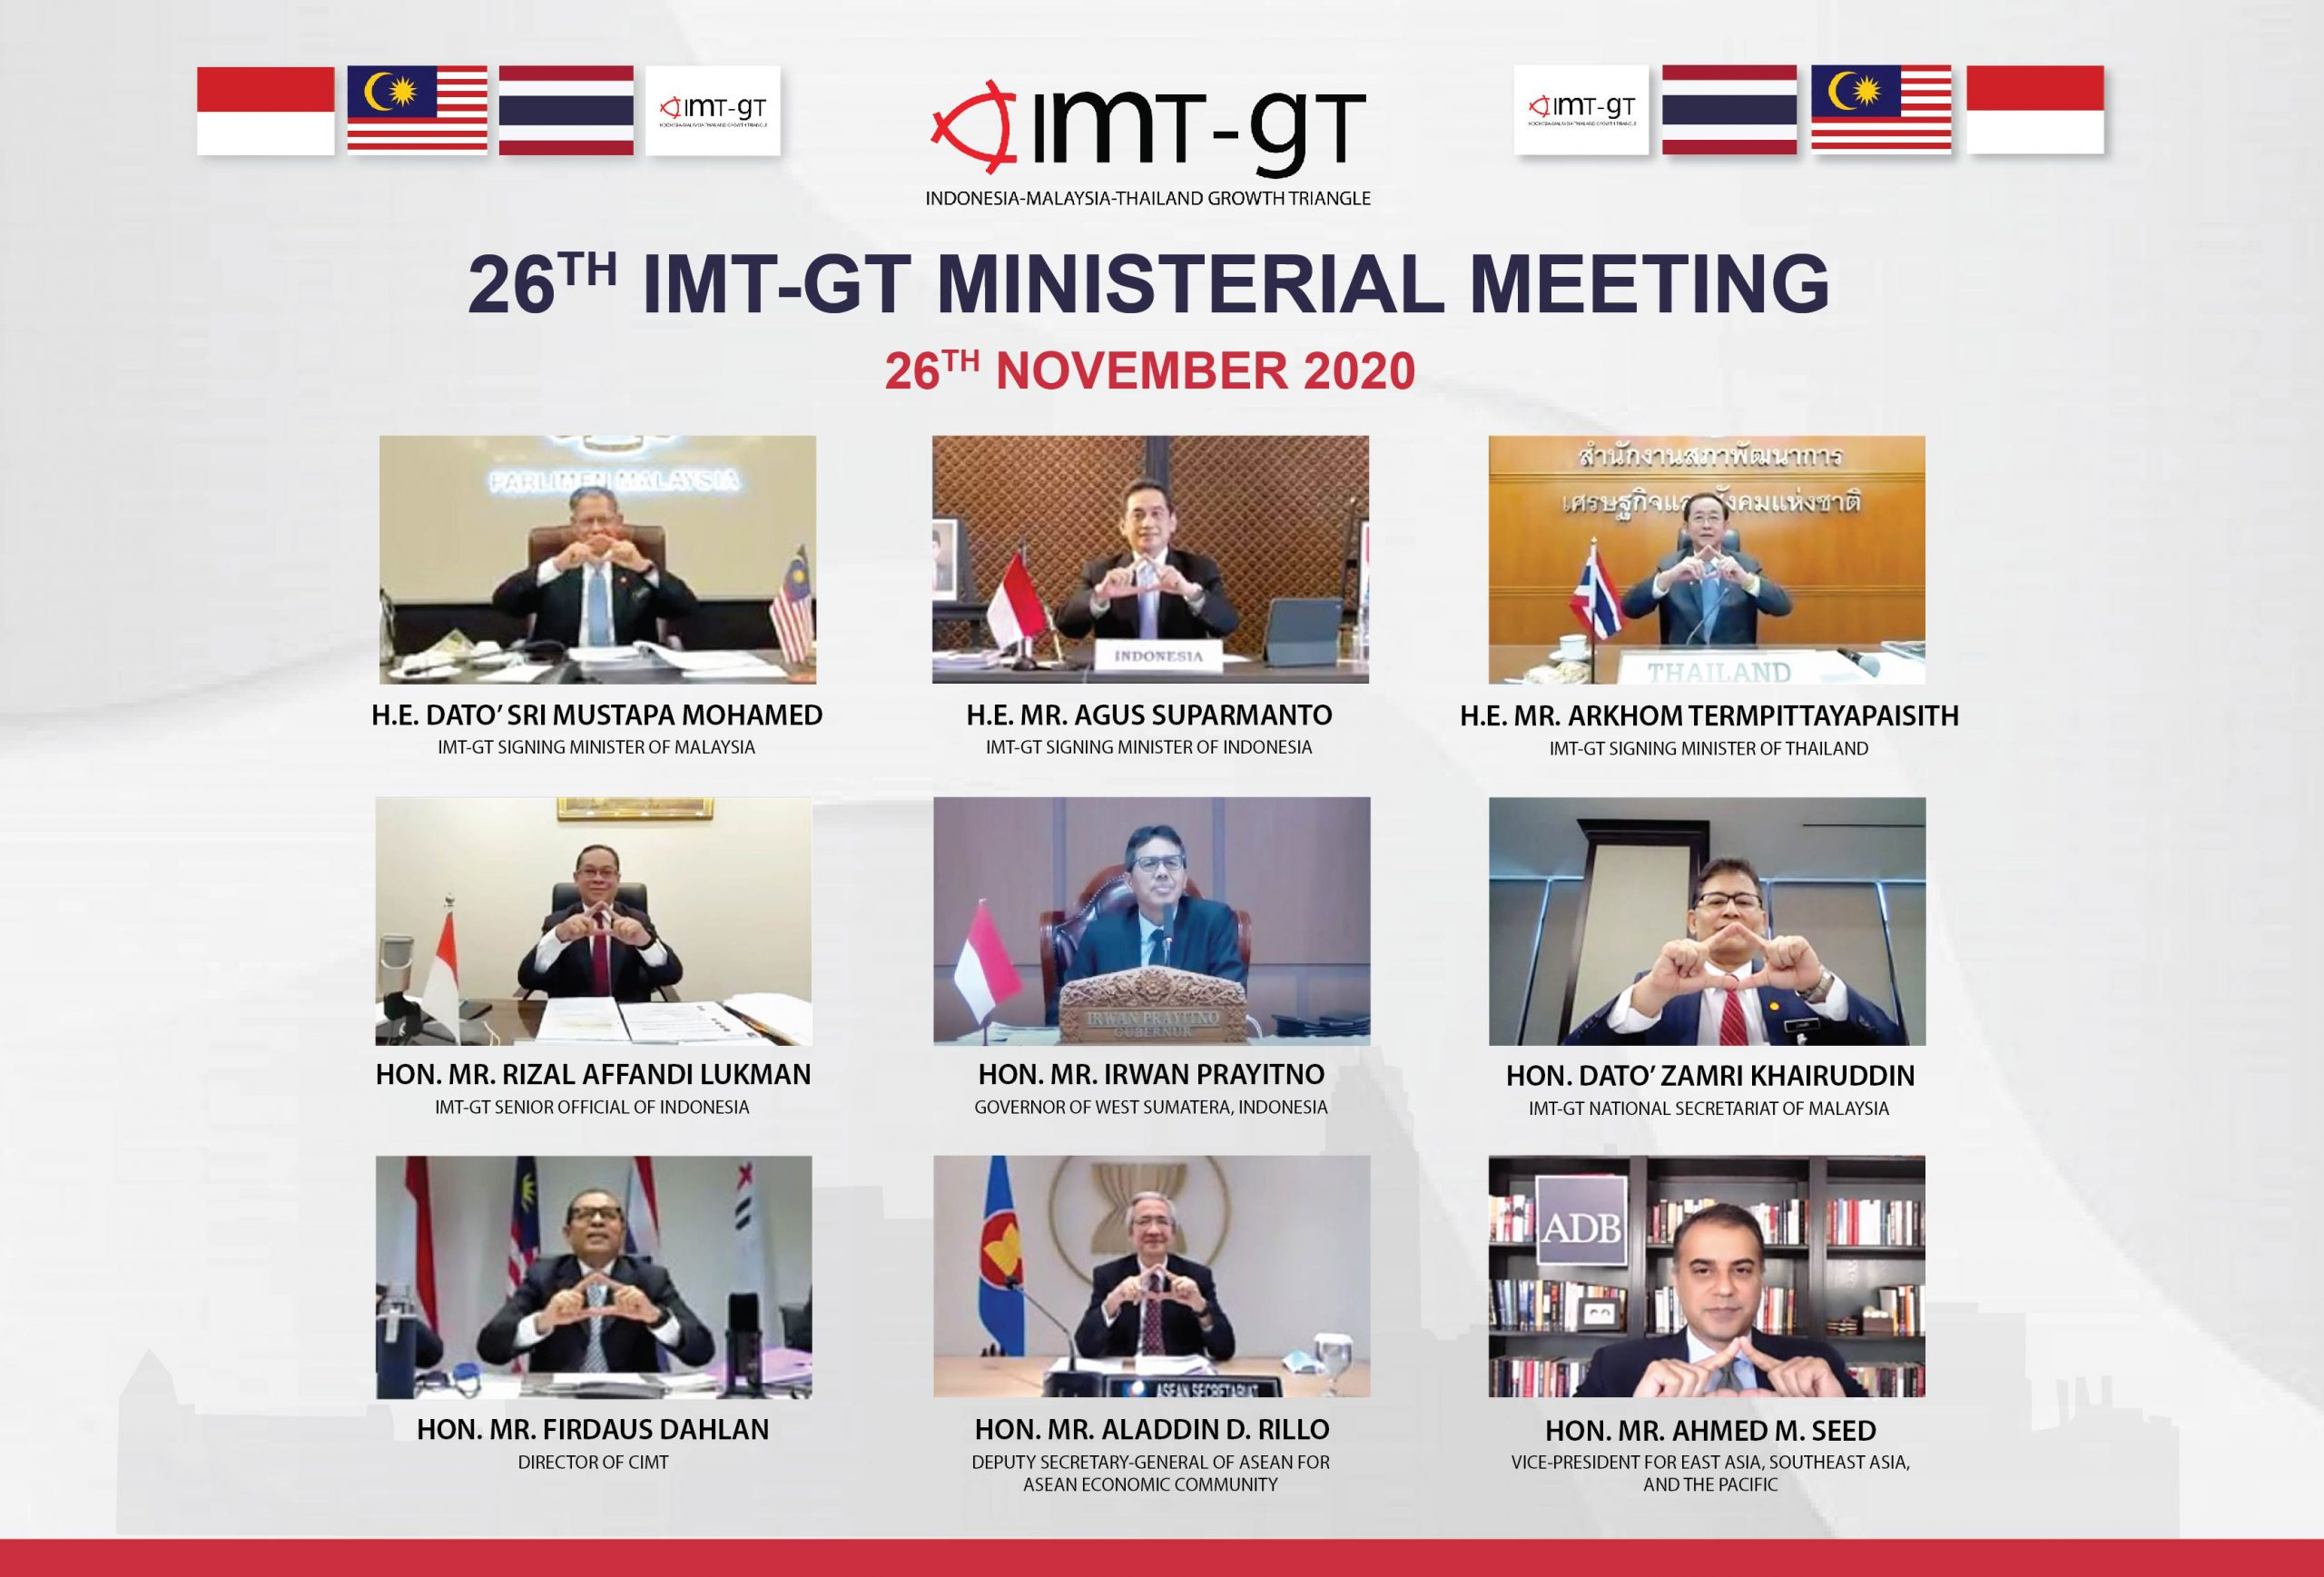 26TH IMT-GT MINISTERIAL MEETING